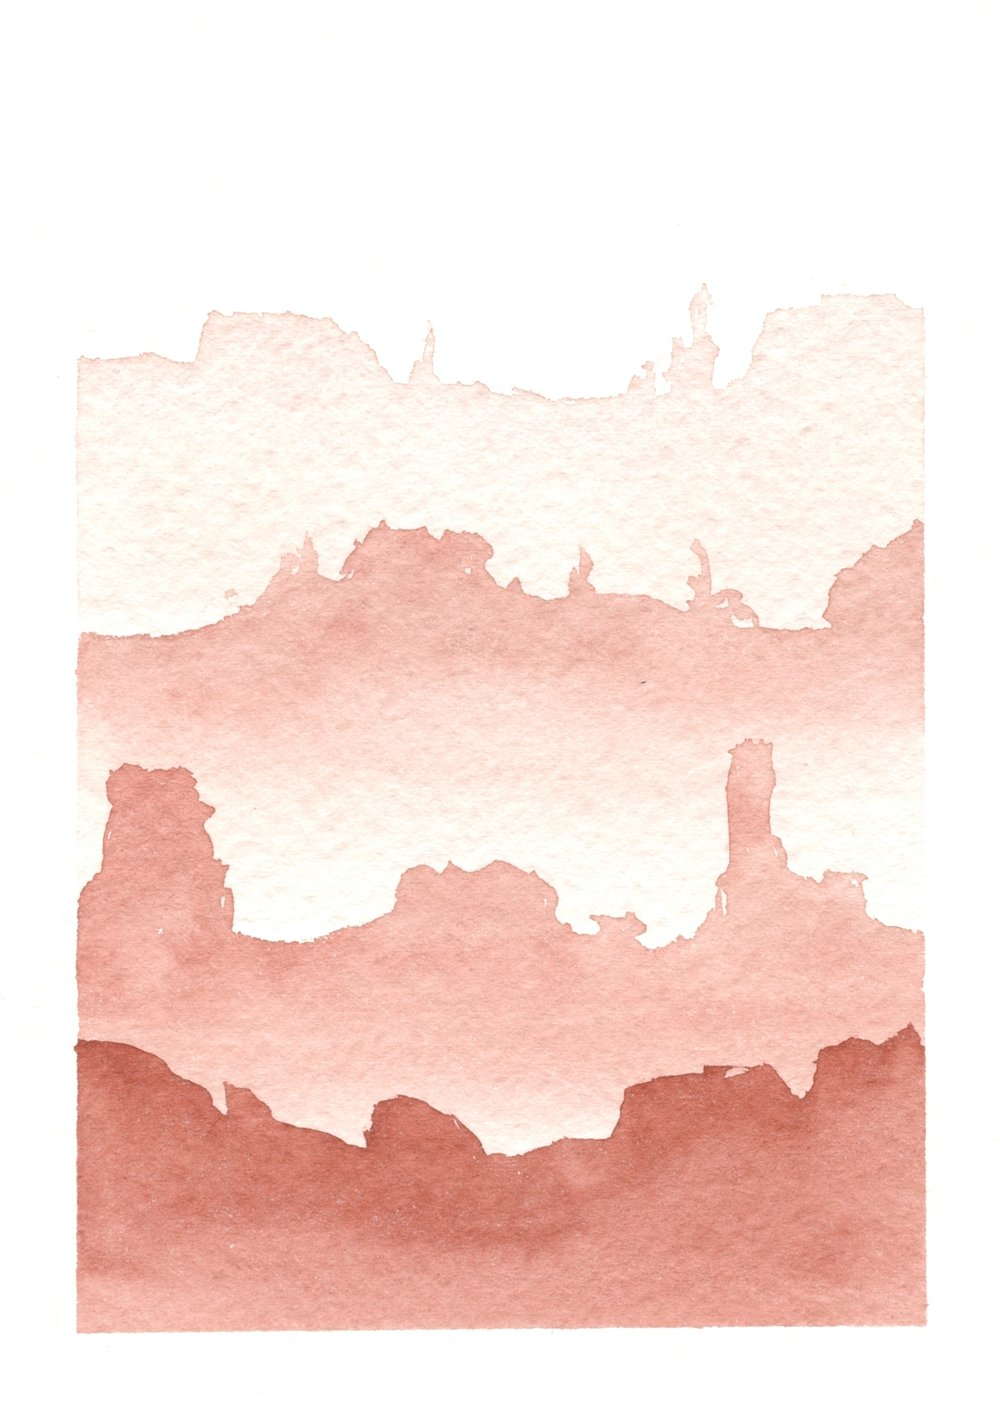 watercolor002.jpg